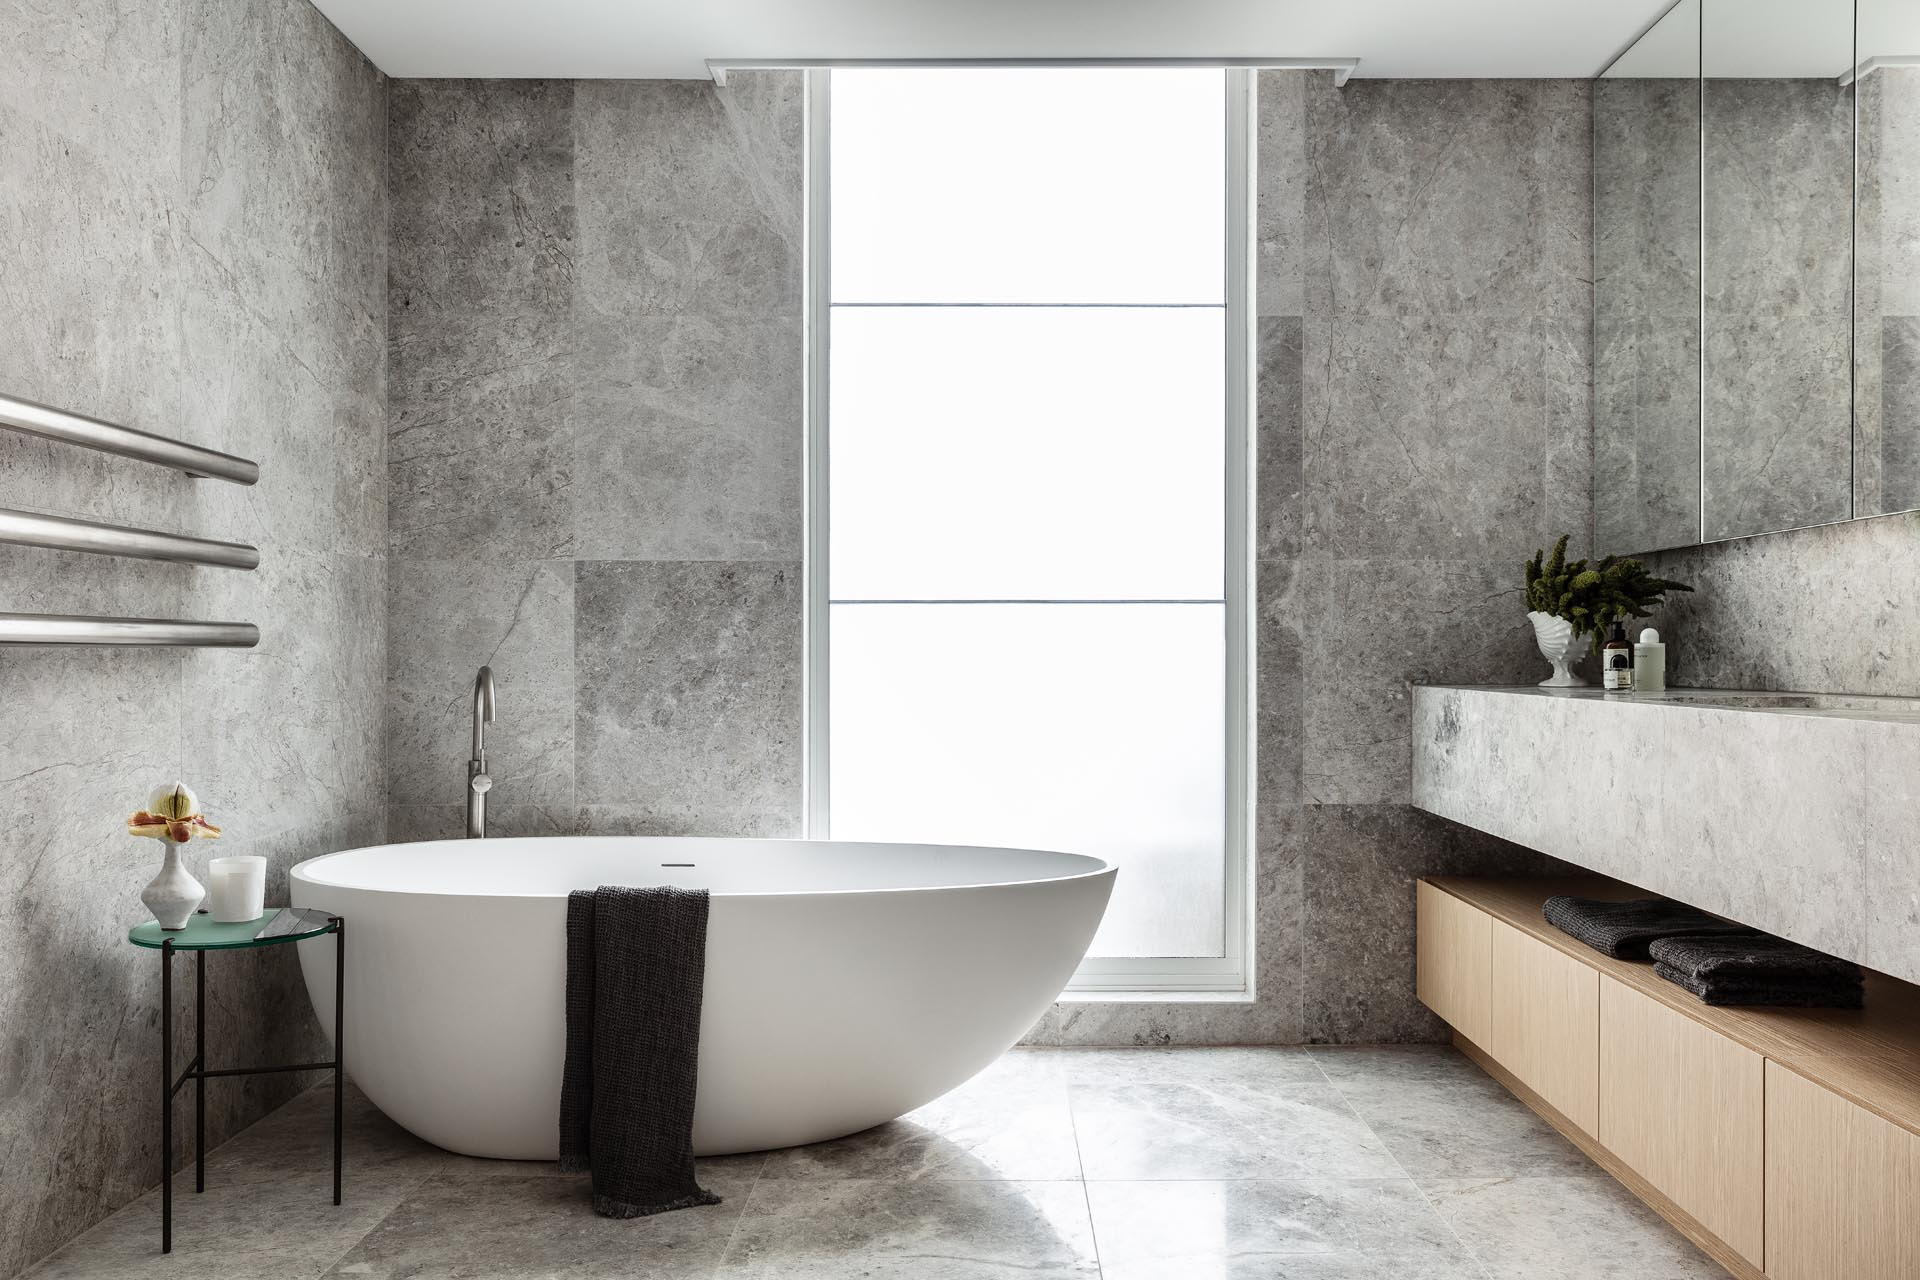 In this modern master bathroom, natural stone with a grey finish covers the walls and floors, as well as the vanity. A floor-to-ceiling frosted window allows the light to pass through, but still allows for privacy.